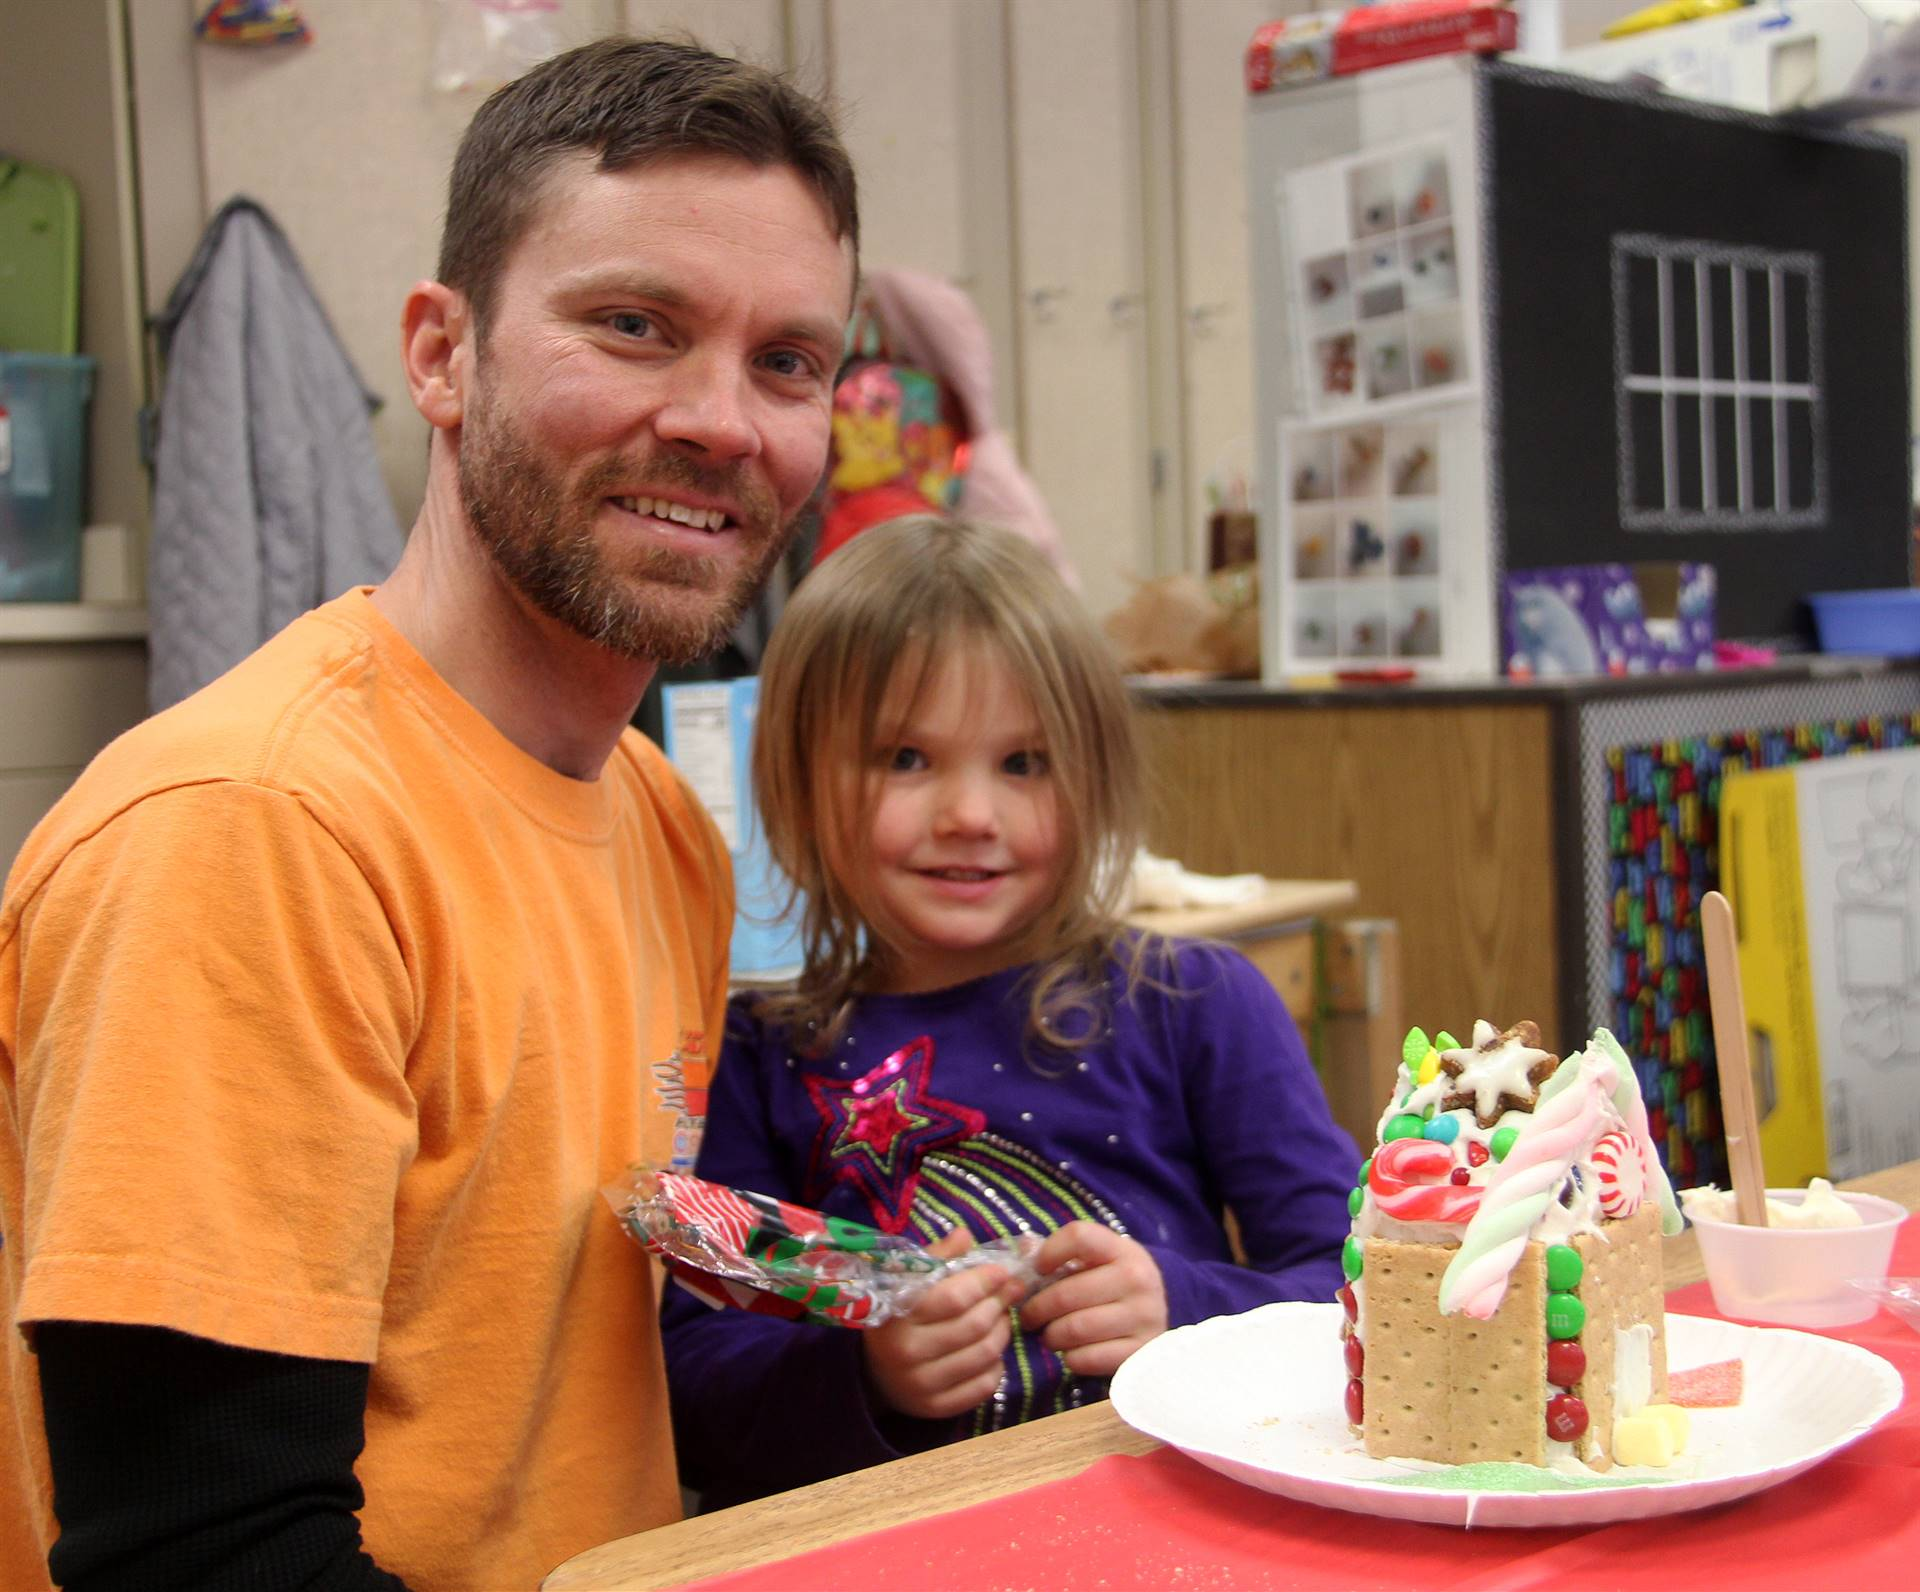 two people smiling next to gingerbread house